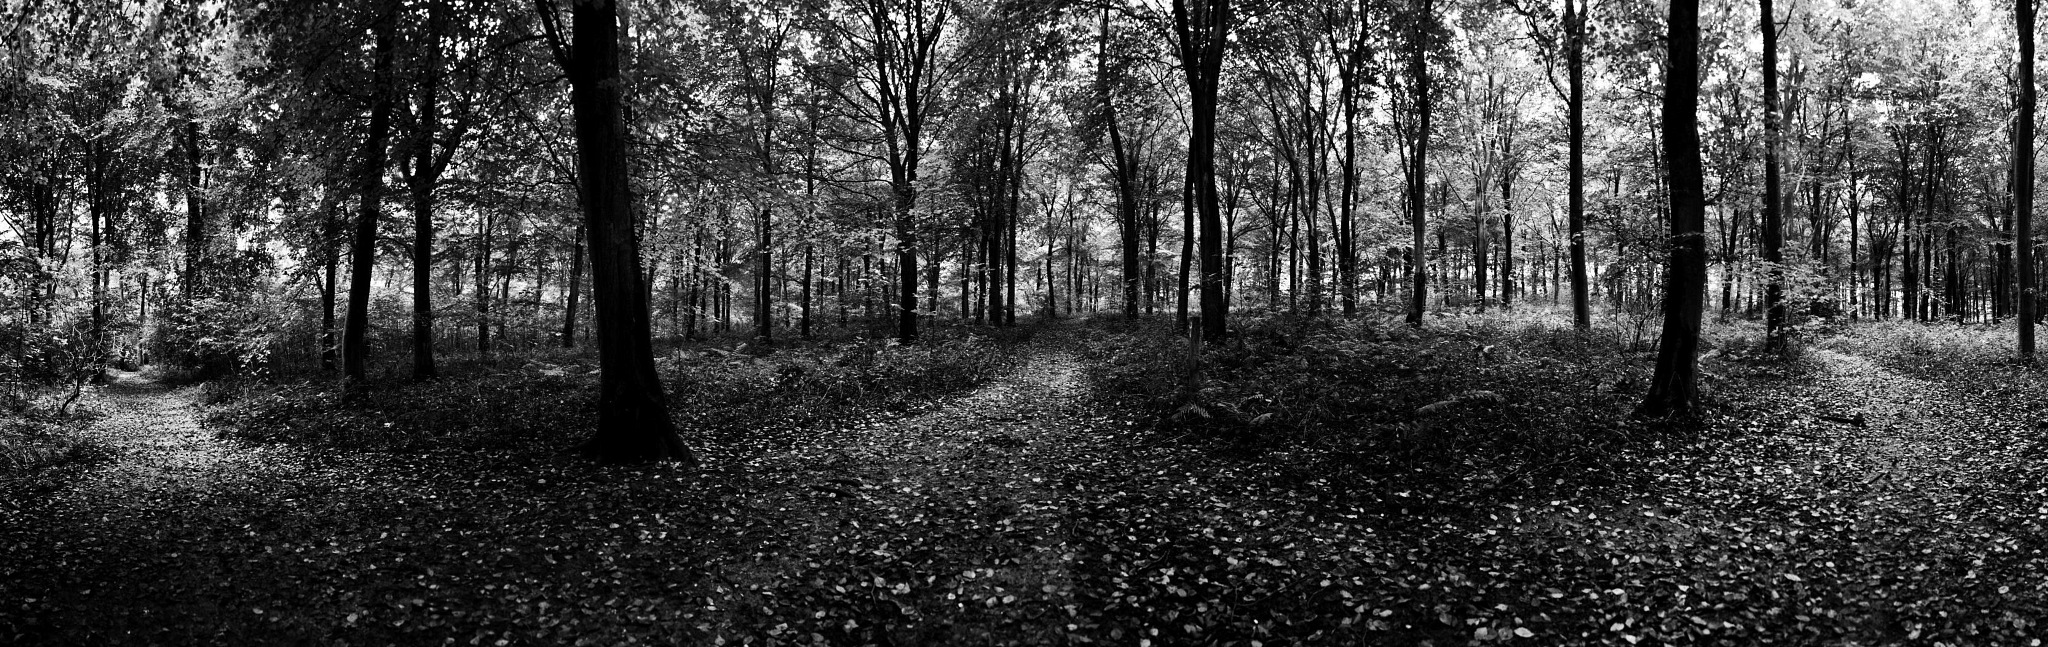 Dividing Paths by Tony Gaitskell